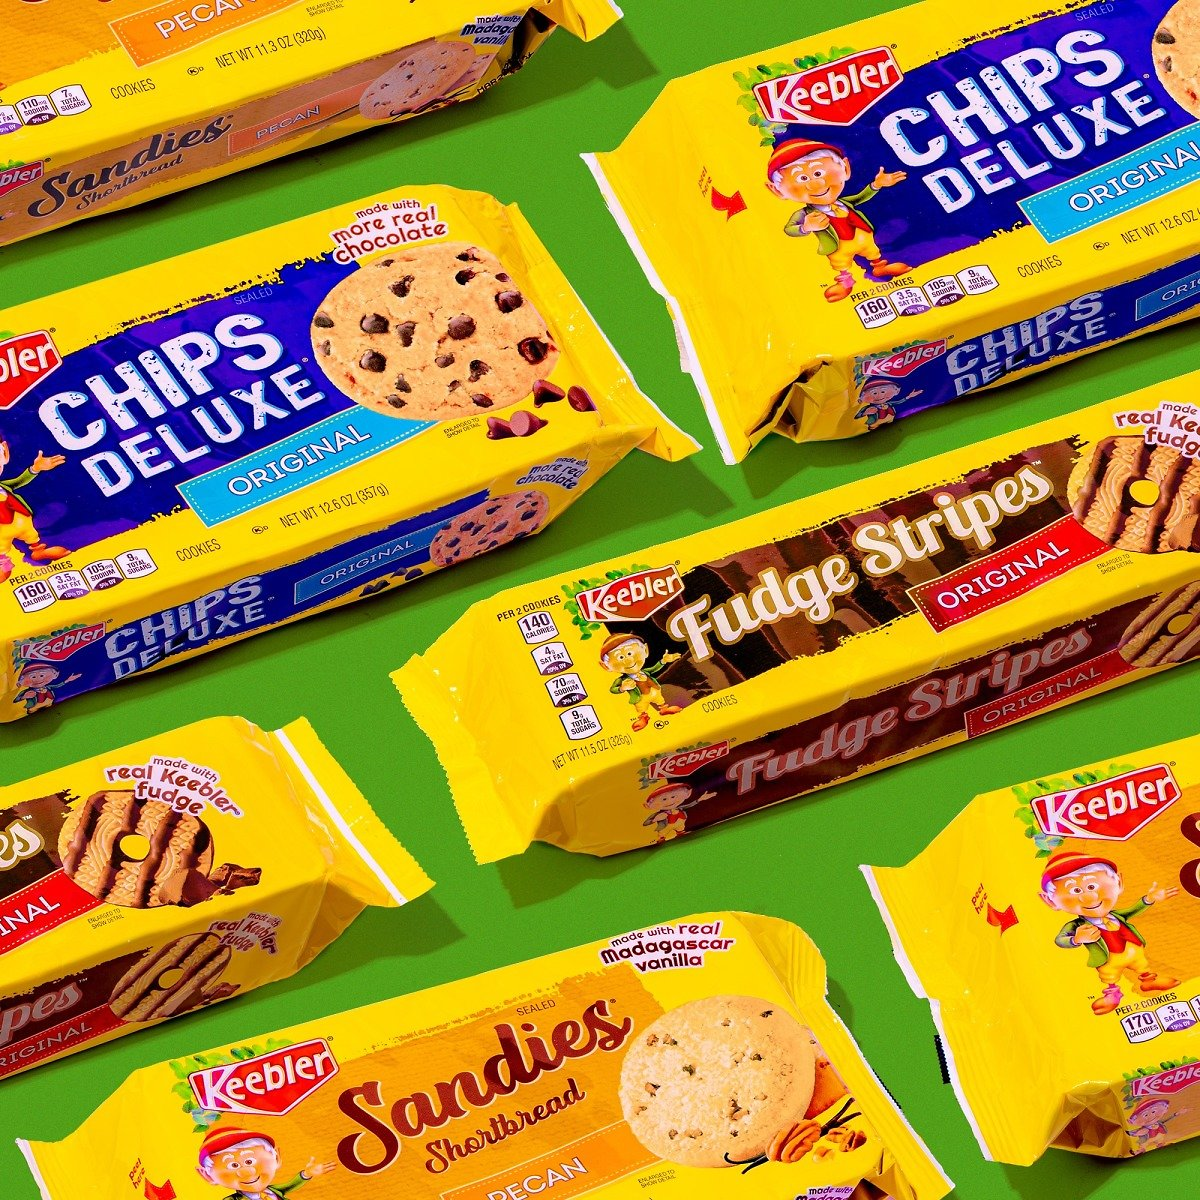 Select Keebler Cookies & Crackers Starting At $2.23